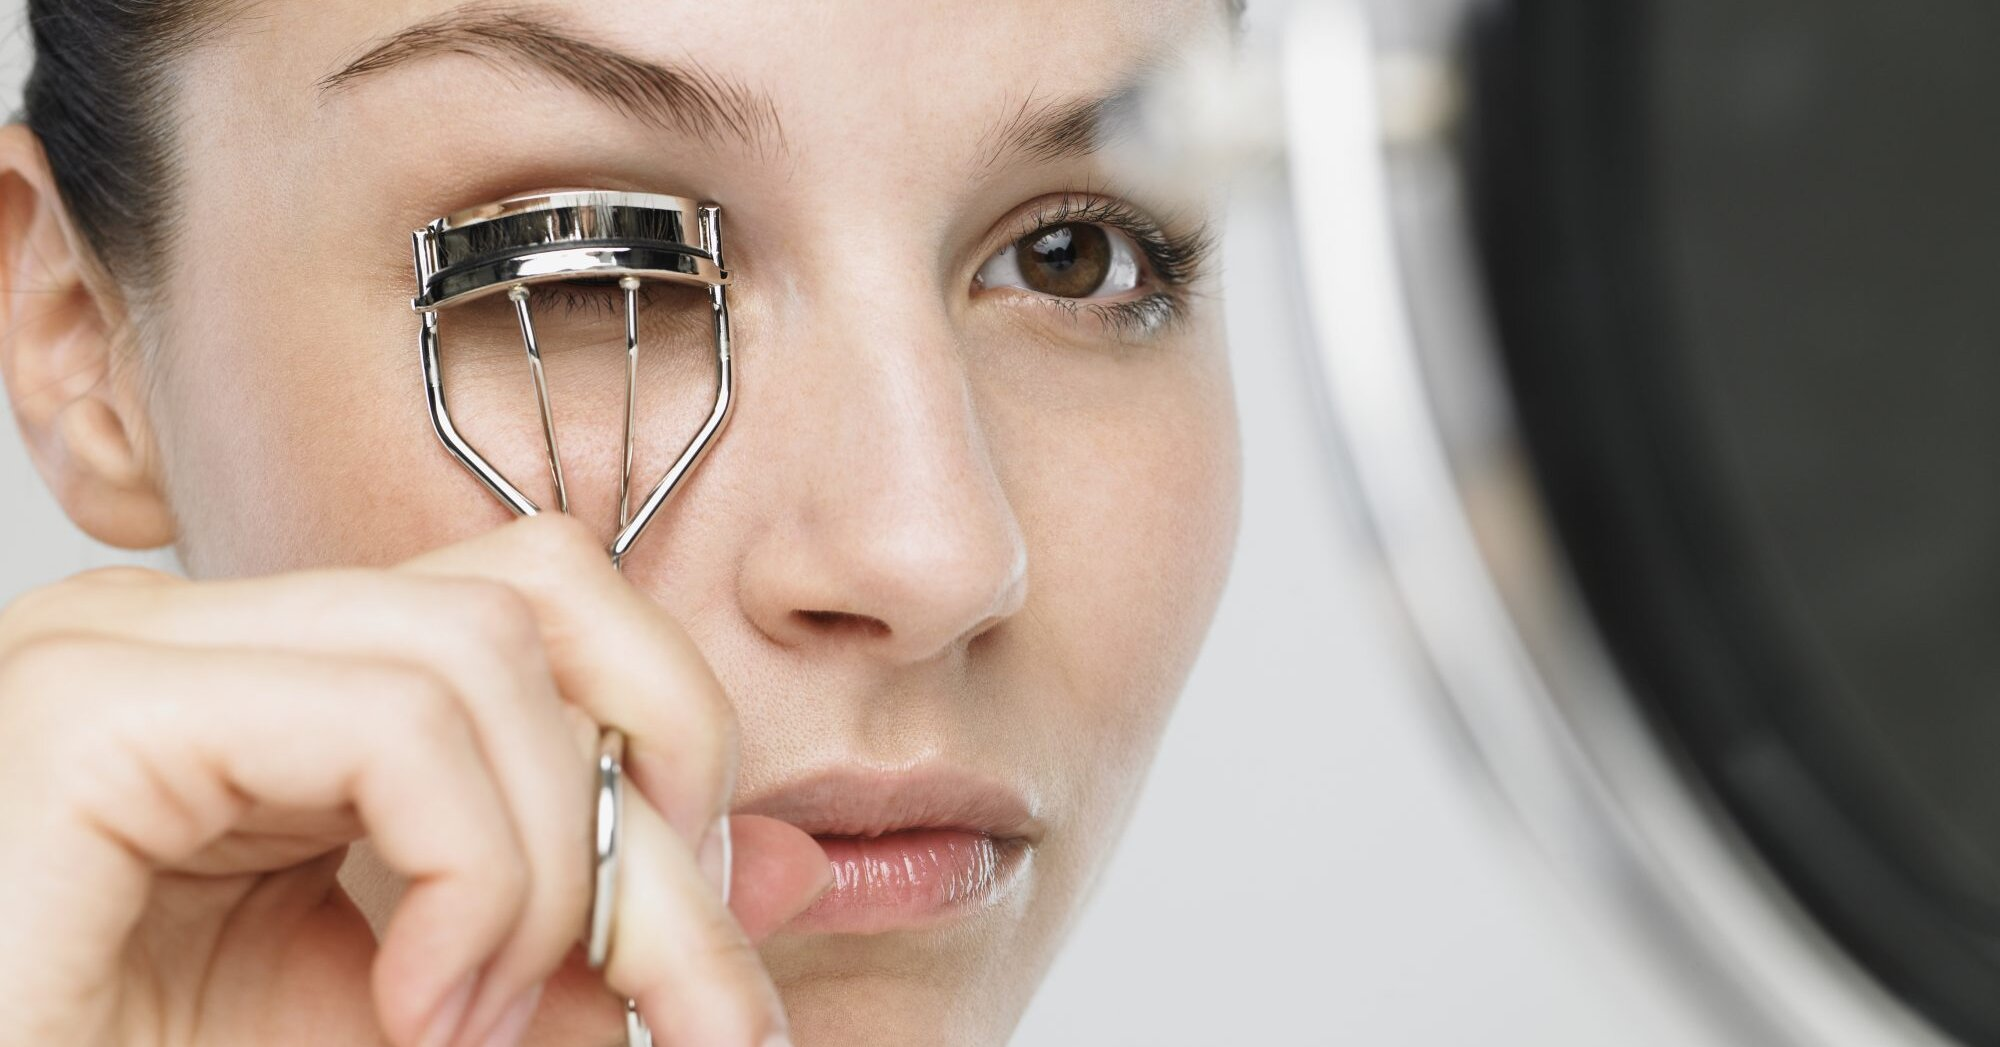 How To Use an Eyelash Curler the Right Way | Southern Living